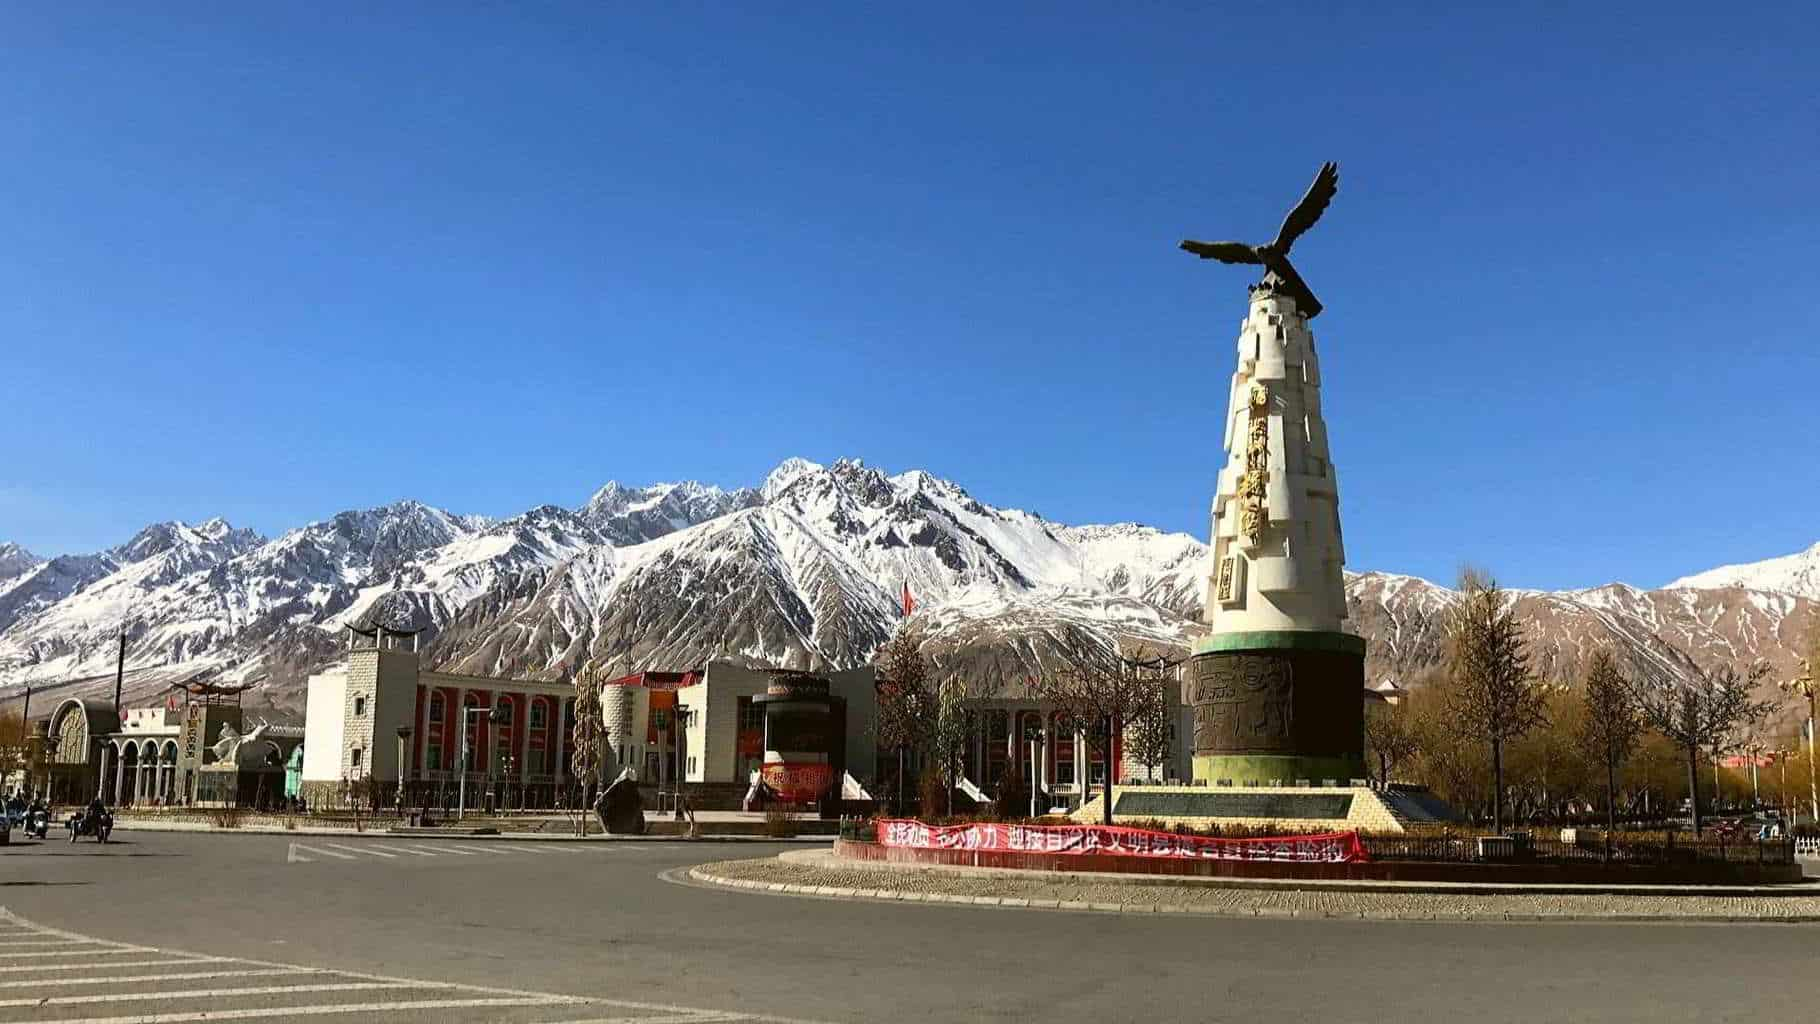 the Flying Eagle monument in the centre of Tashkurgan west china